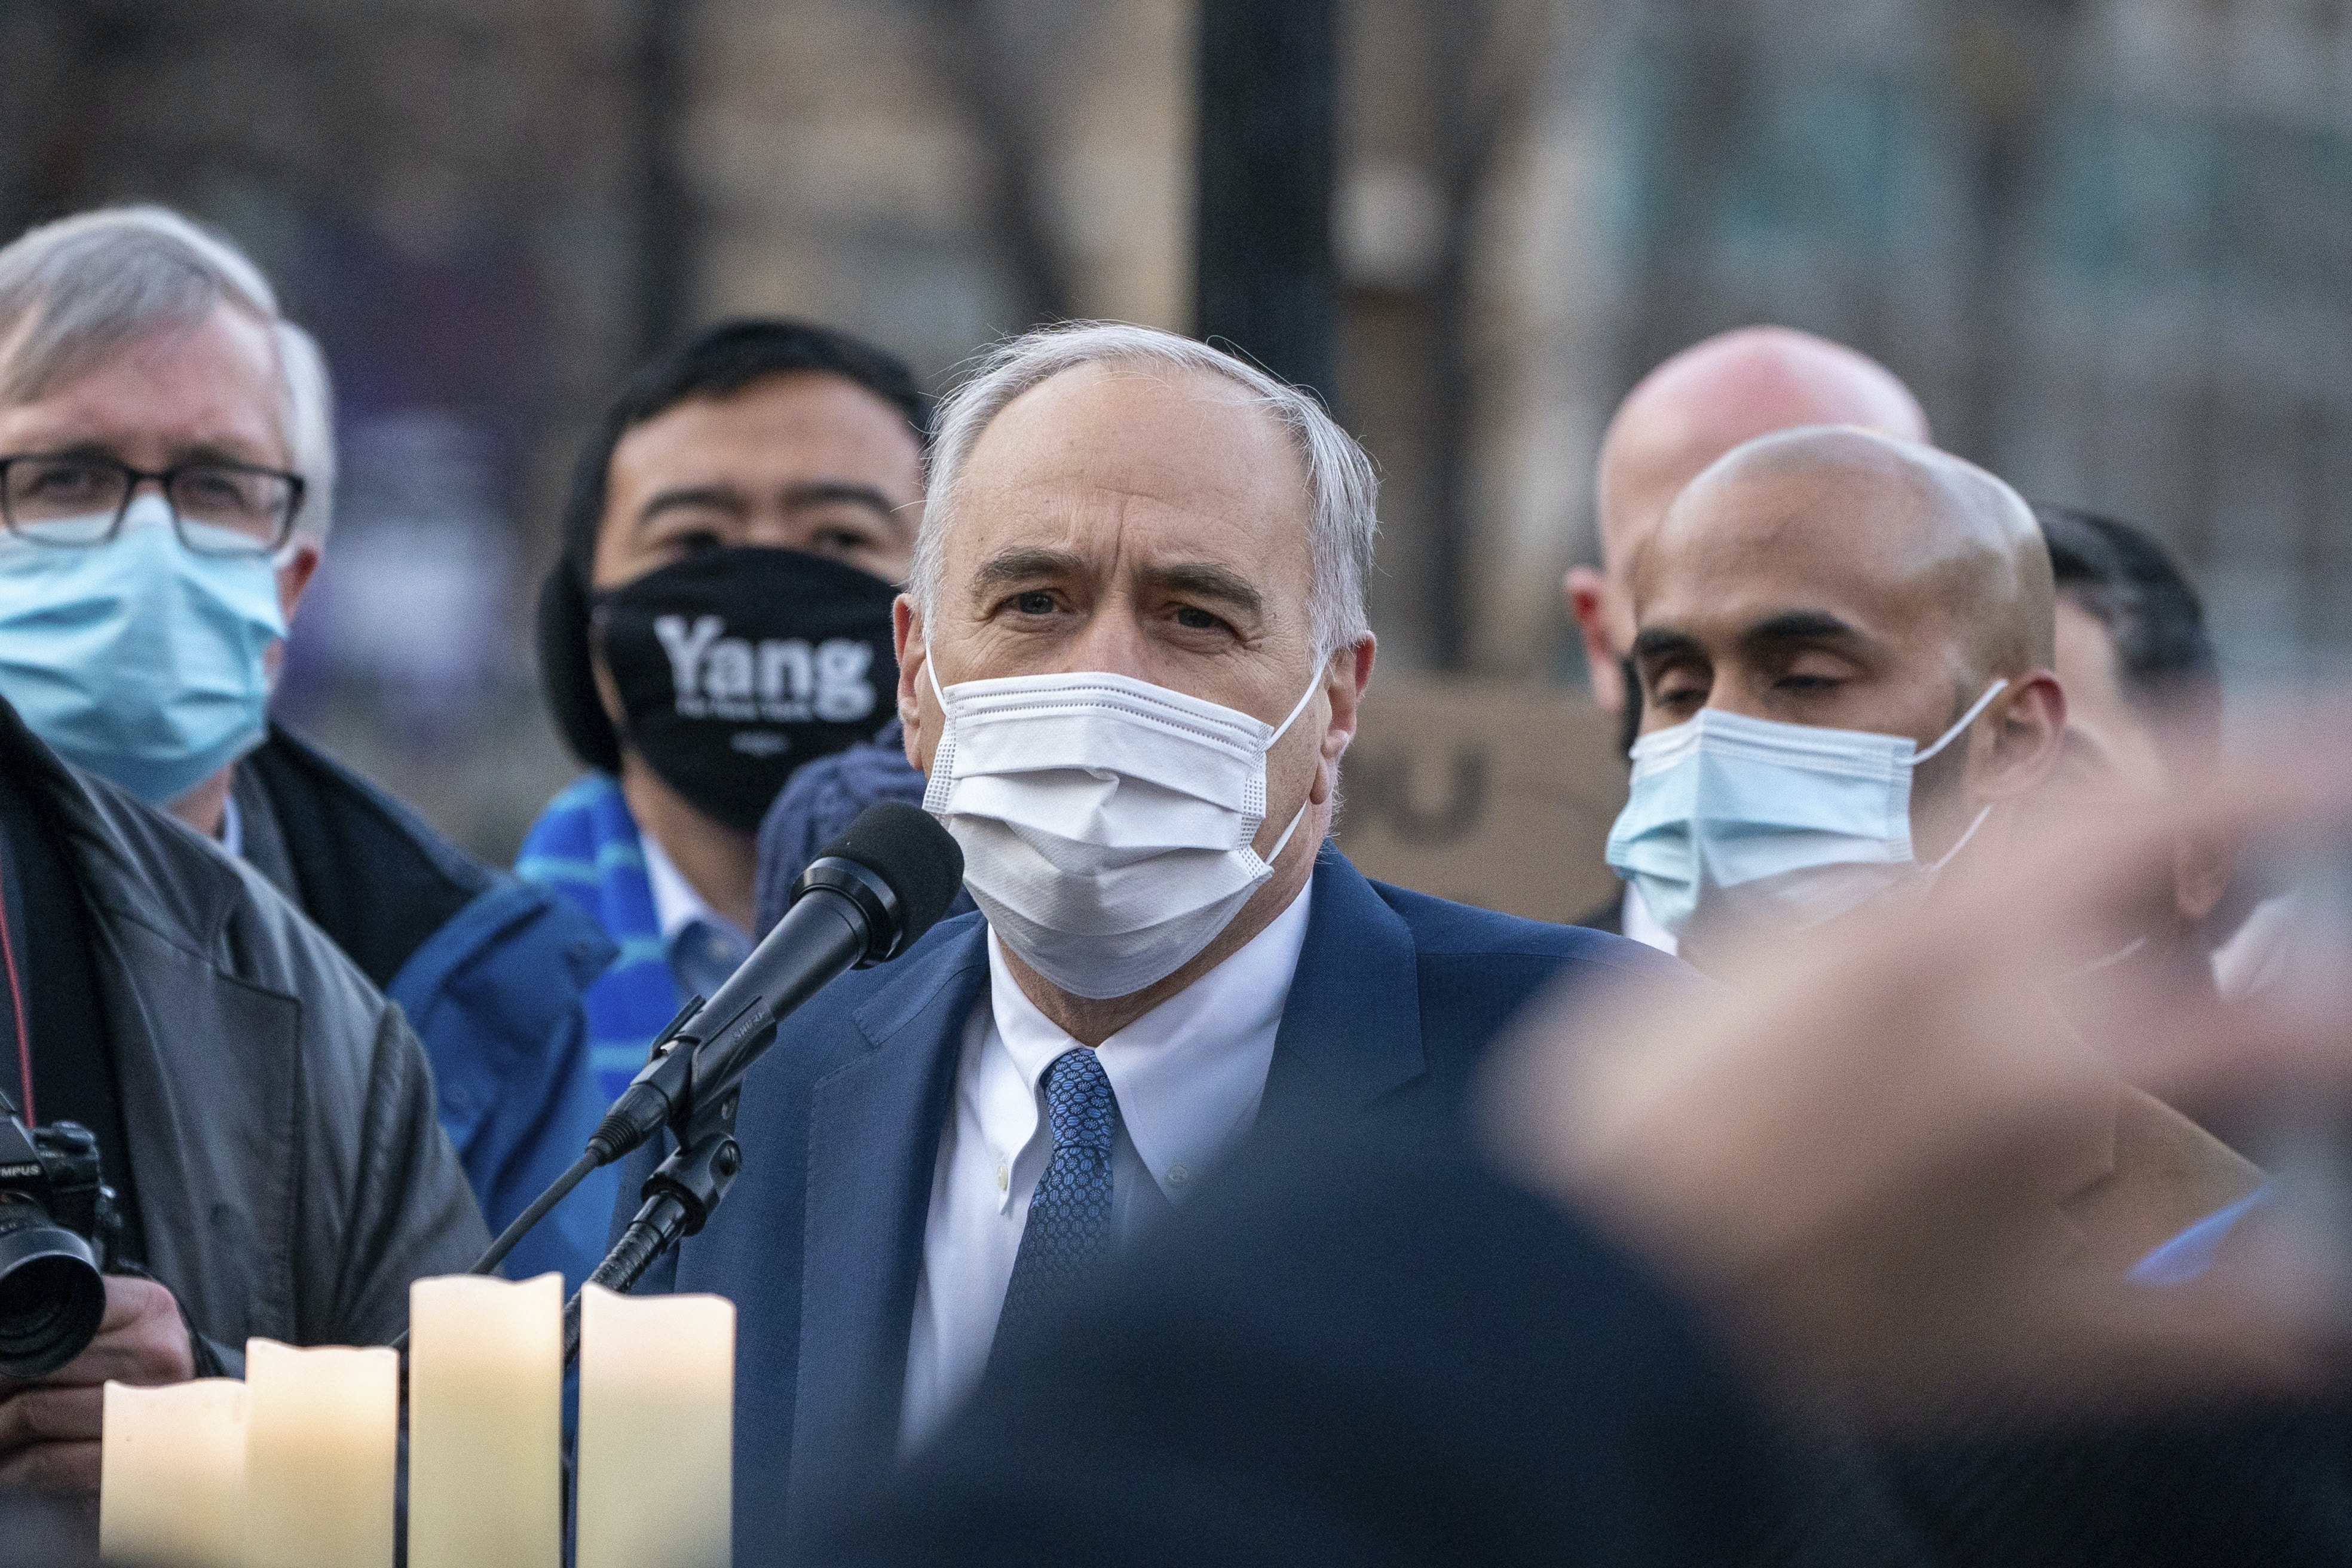 New York State Comptroller Thomas P. DiNapoli attends peace vigil for Atlanta Spa shooting victims of Asian hate at the Union Square in New York City, United States on March 19, 2021. (Photo by John Nacion/NurPhoto via AP)